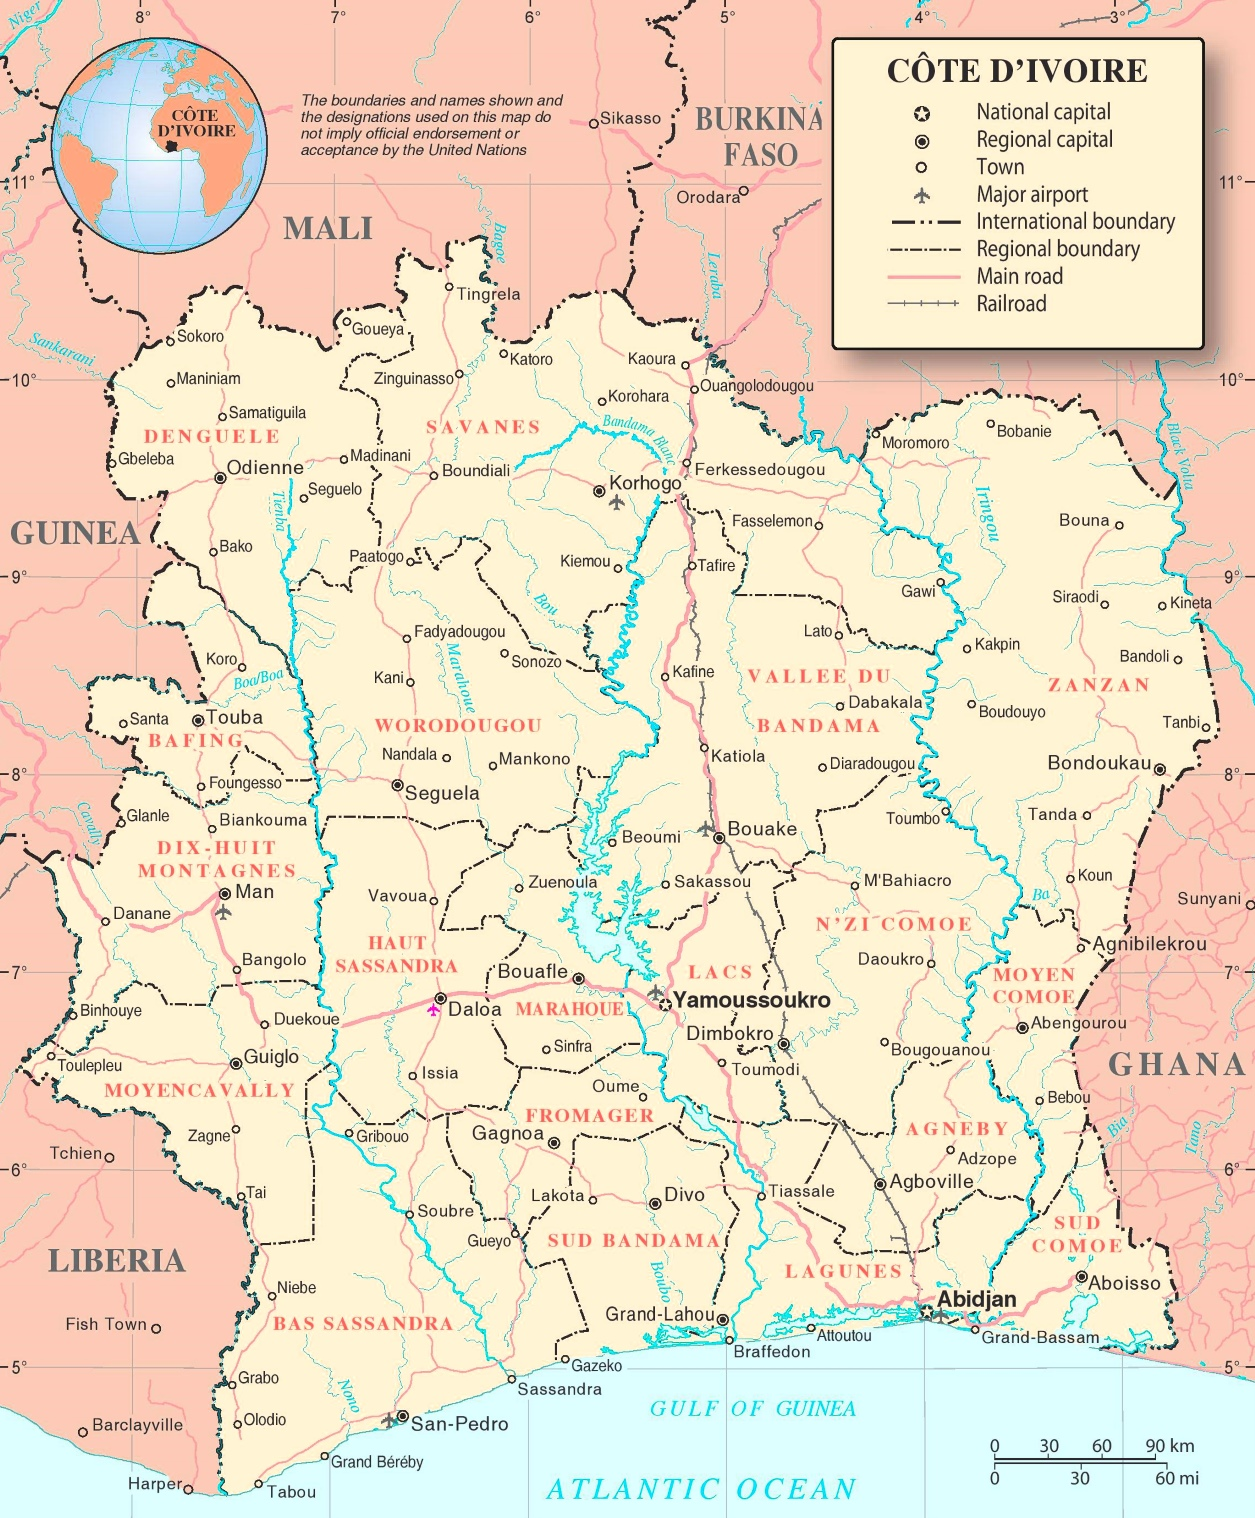 Cte dIvoire political map